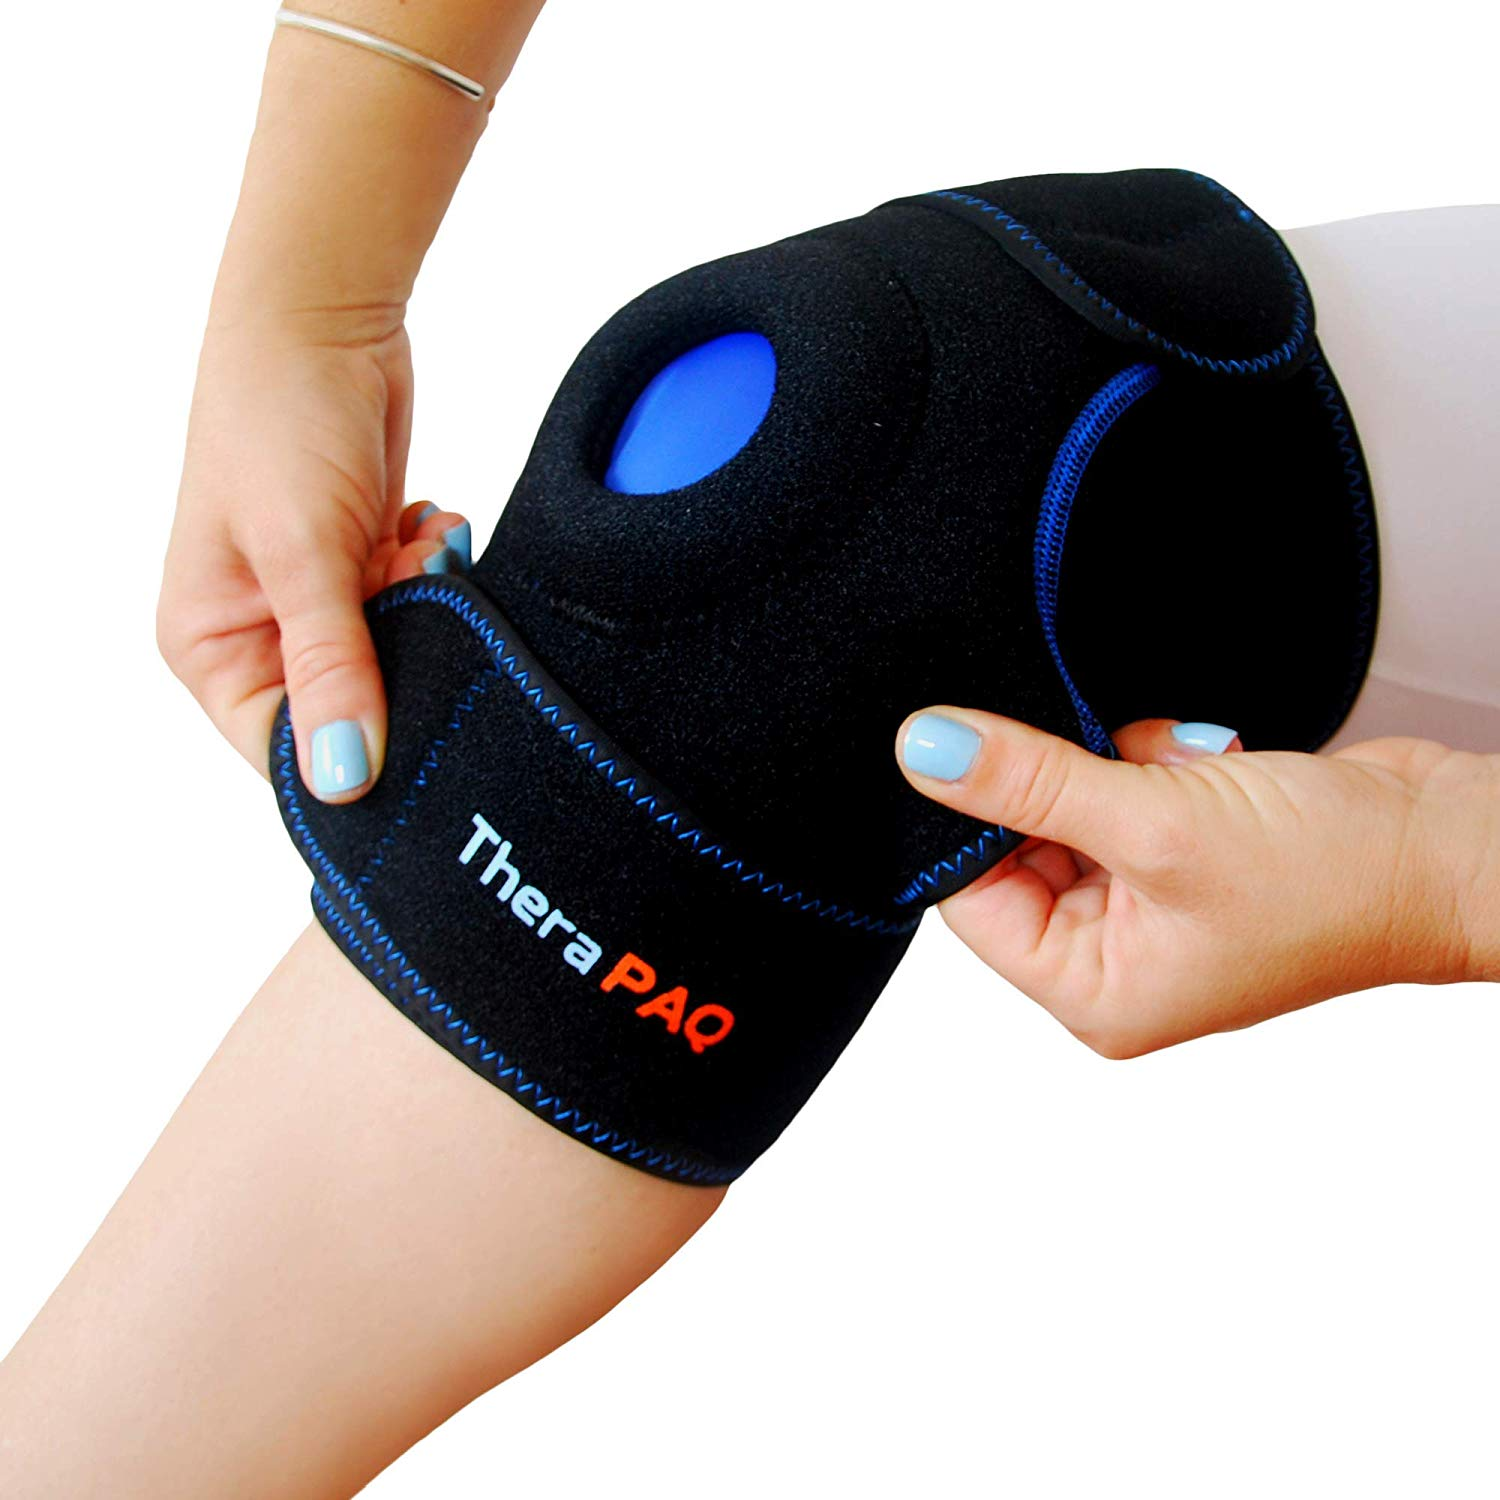 Knee Ice Pack Wrap by TheraPAQ: Hot & Cold Therapy Knee Support Brace